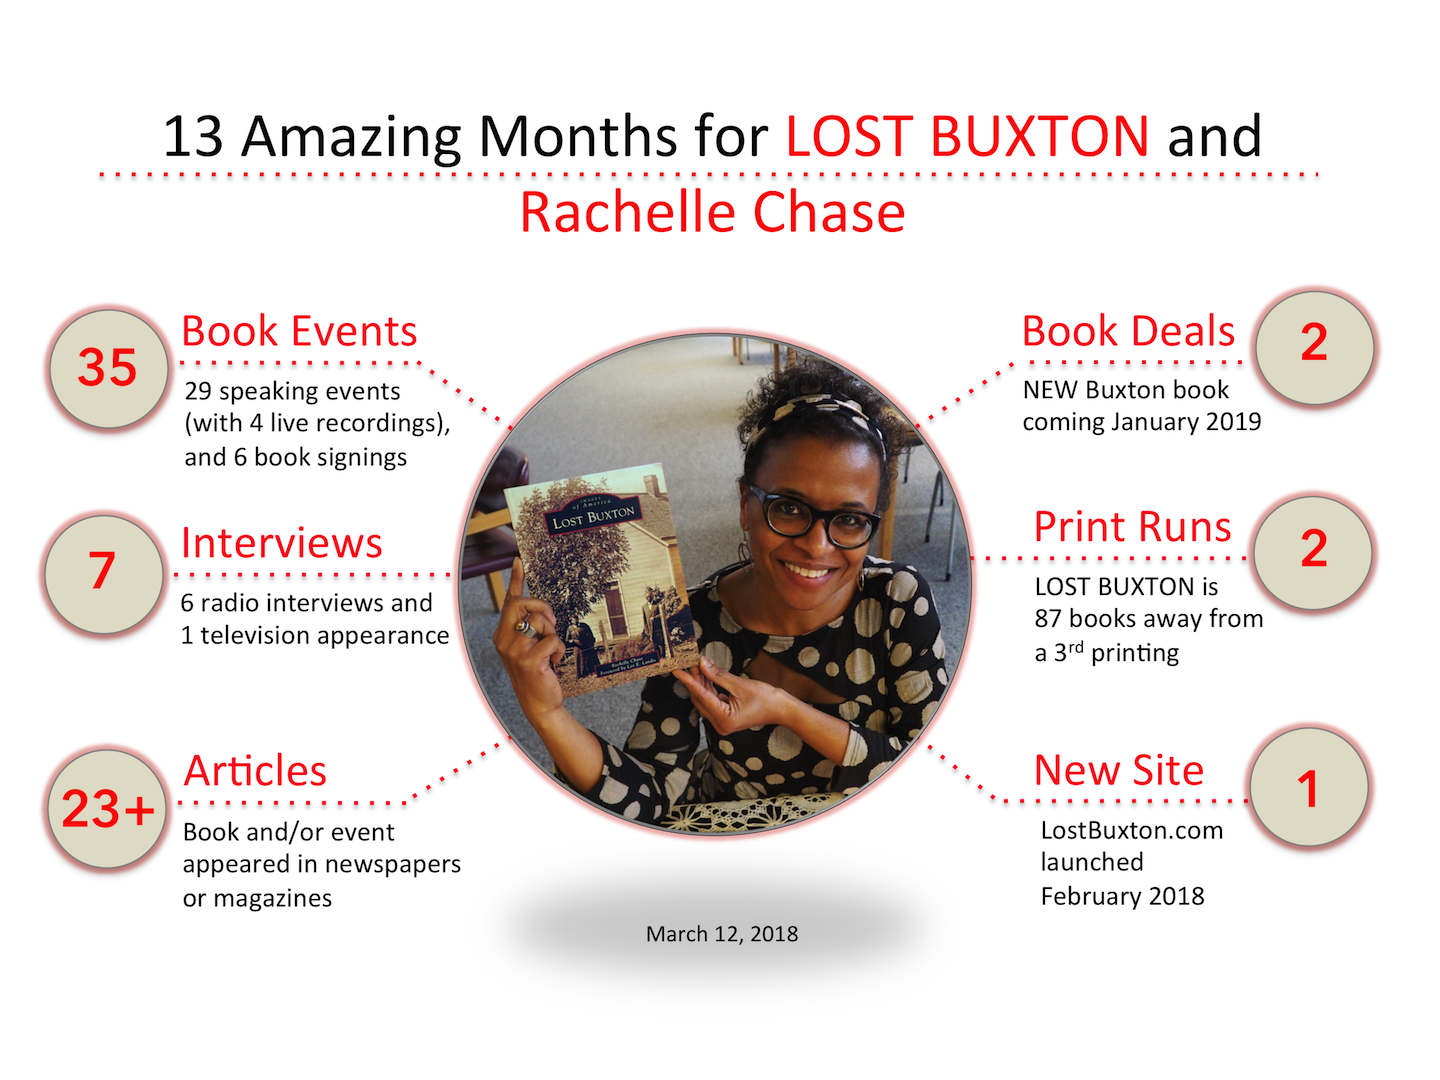 Lost Buxton and Rachelle Chase